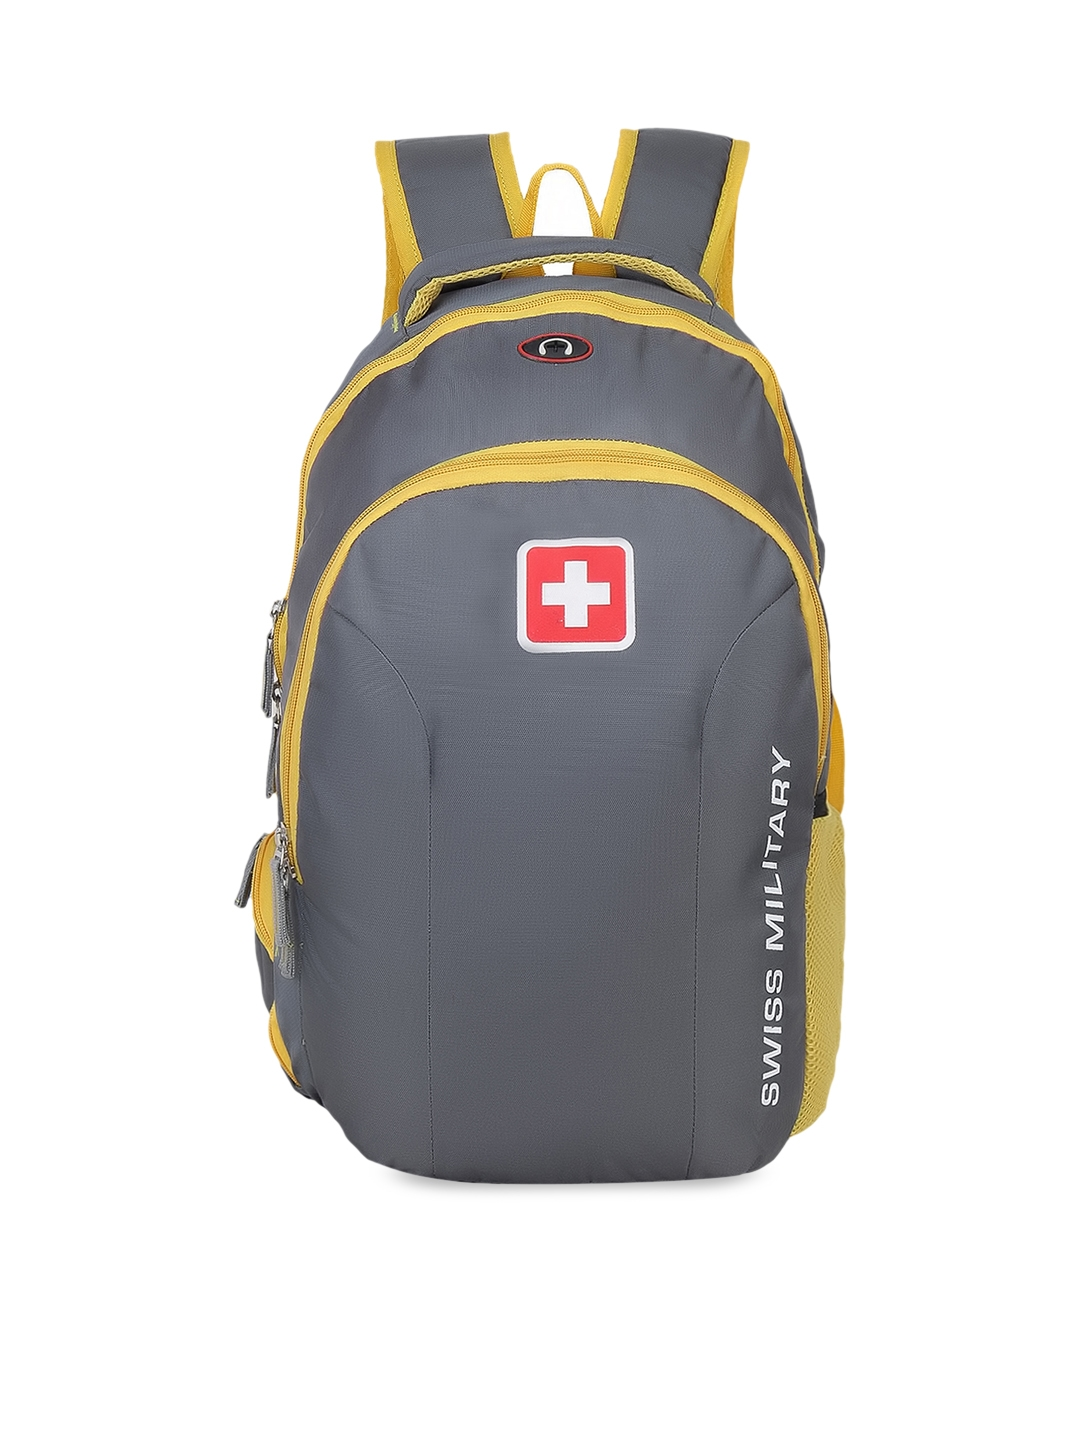 SWISS MILITARY Unisex Grey   Yellow Solid Laptop Backpack 25L